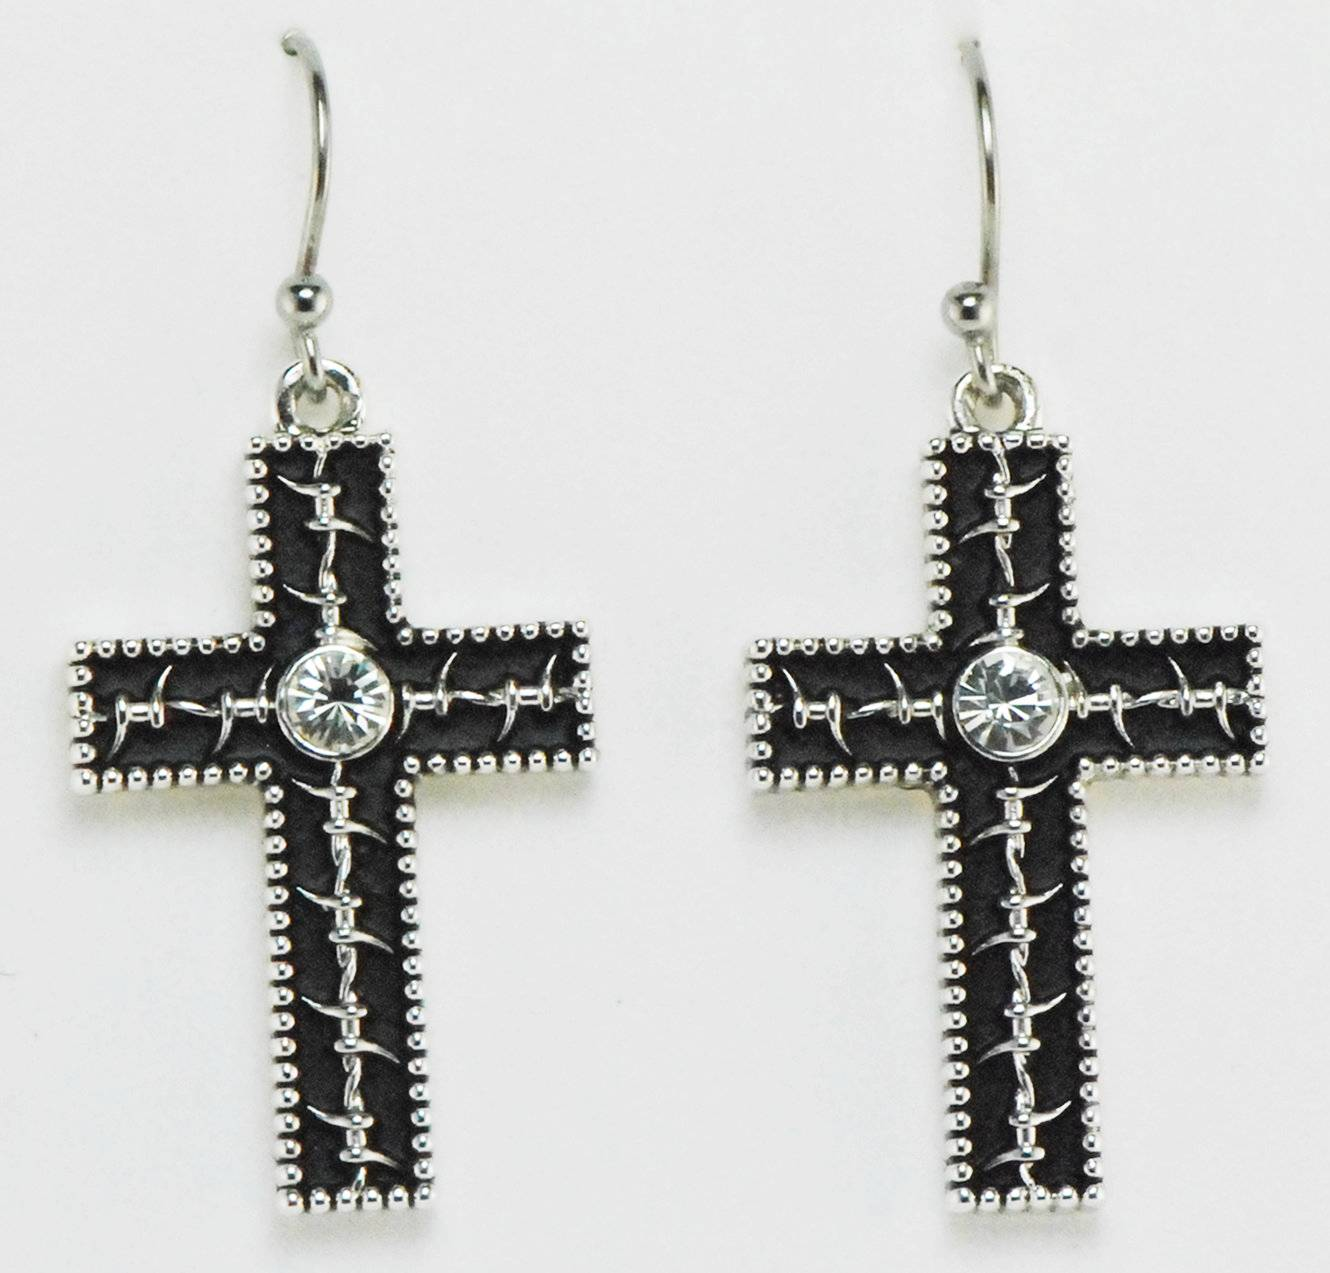 Western Edge Jewelry Barb Wire Cross Earrings